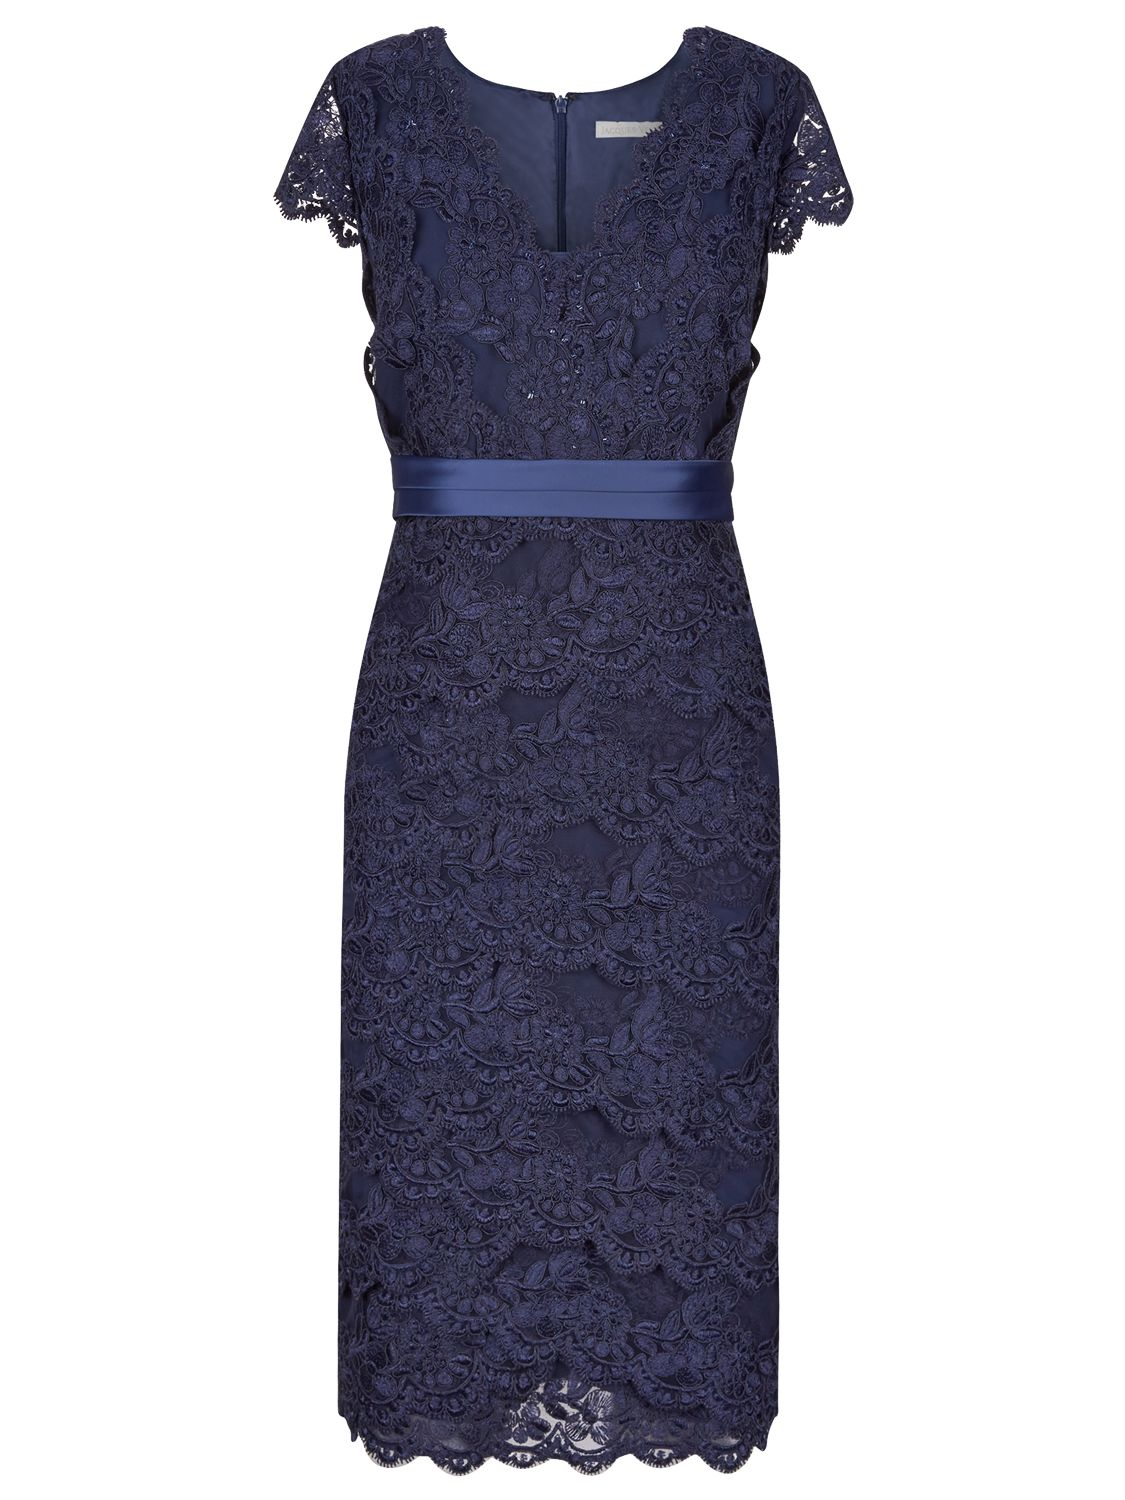 jacques vert lace tiered dress midnight, jacques, vert, lace, tiered, dress, midnight, jacques vert, 10|12, clearance, womenswear offers, womens dresses offers, new years party offers, women, plus size, special offers, inactive womenswear, new reductions, womens dresses, 1725629